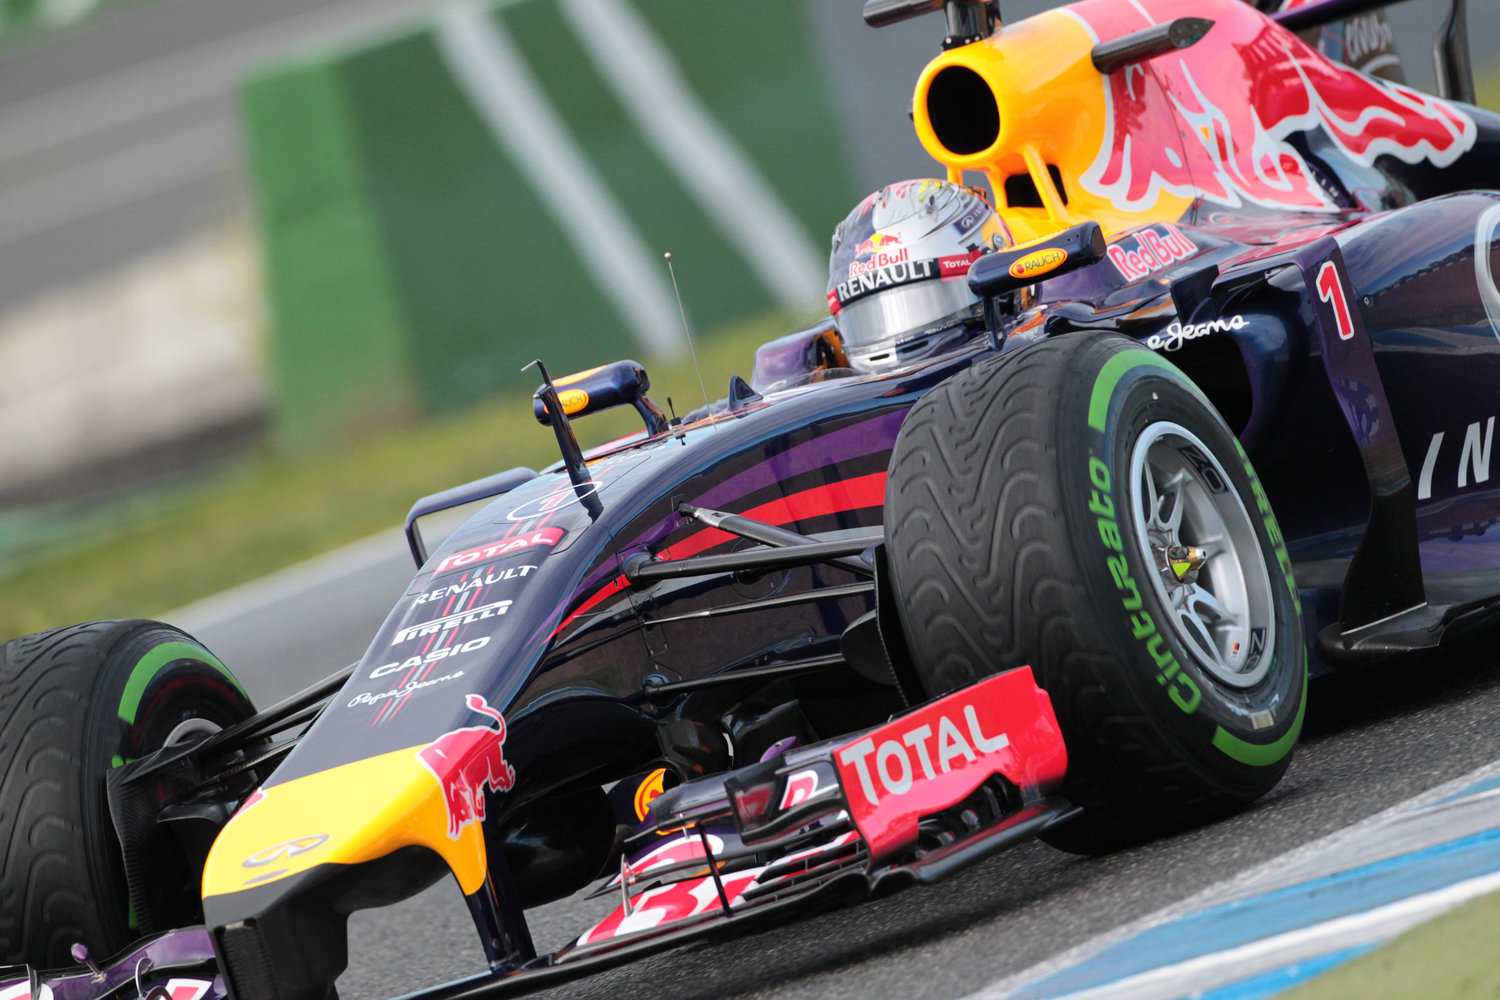 red bull 2014 rules explained 4